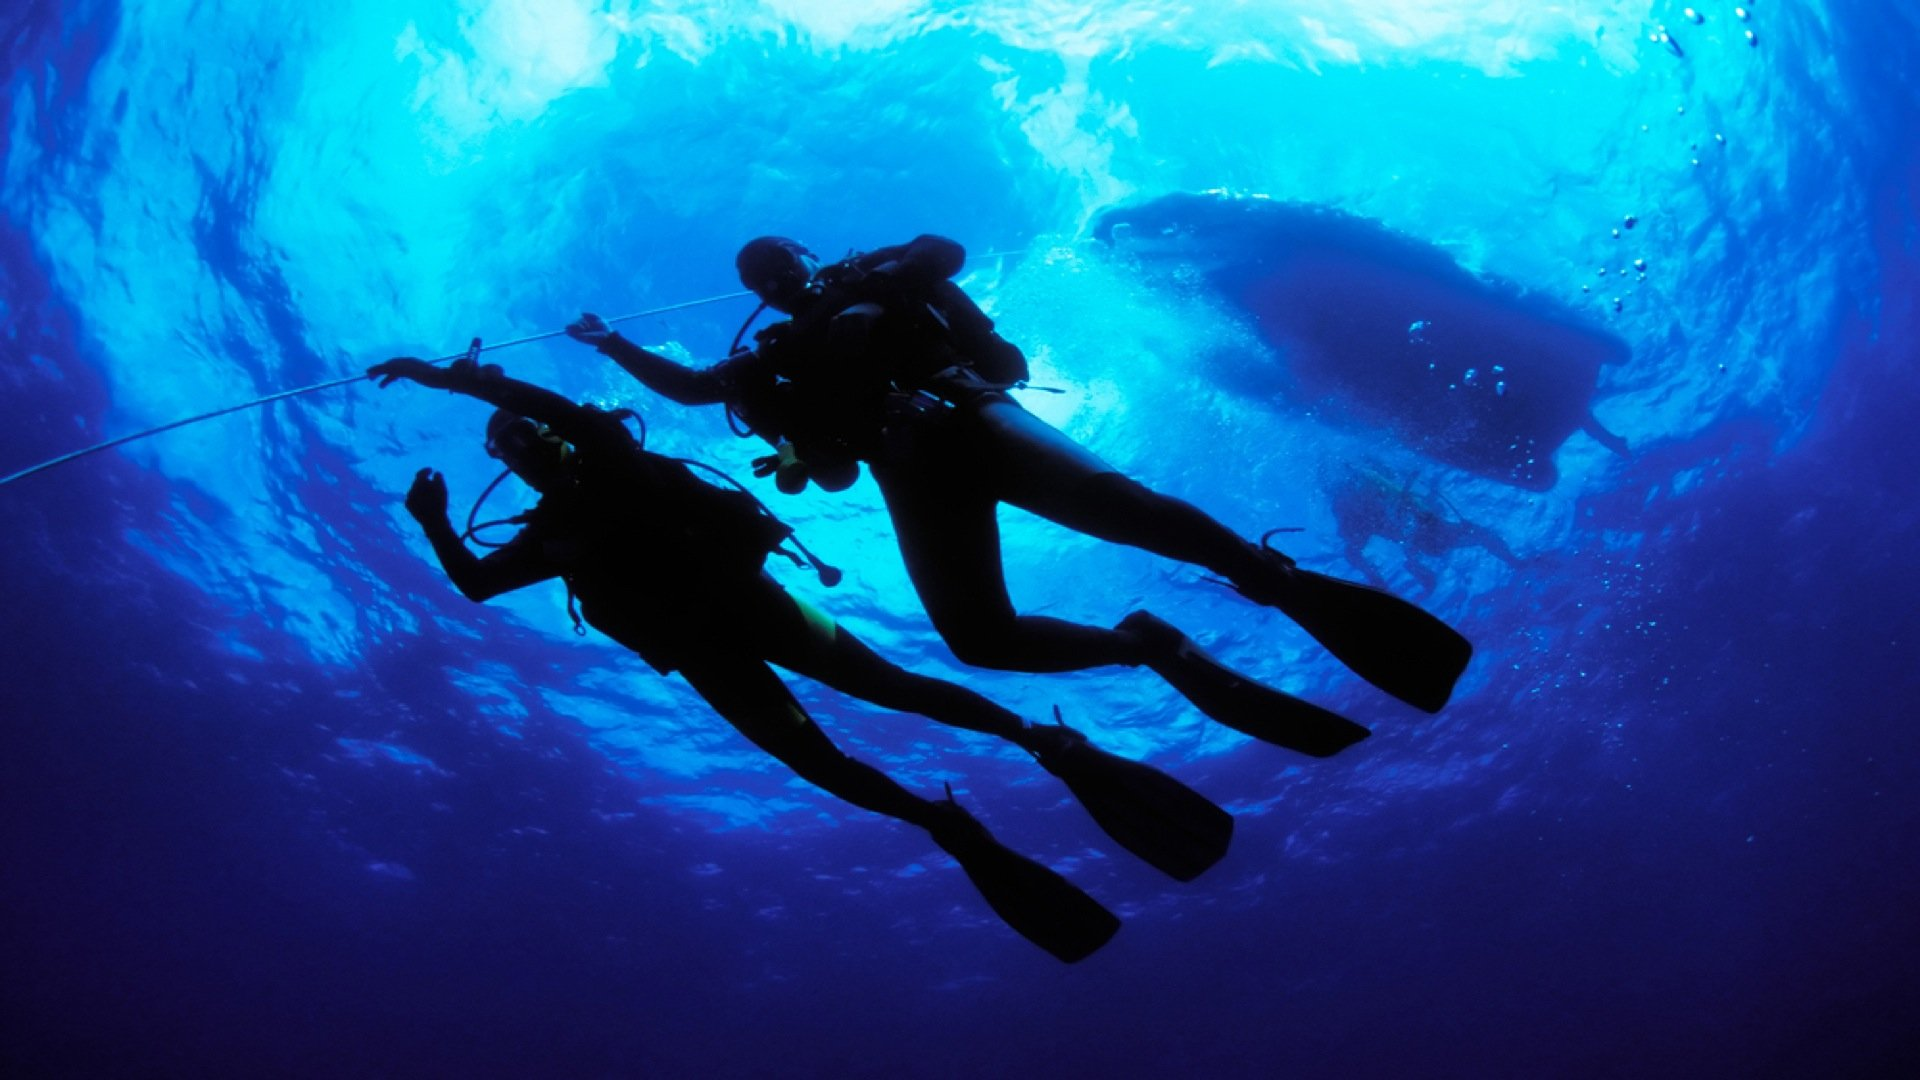 Scuba Diving in Kerala - Snorkeling and Water Sports in Kovalam